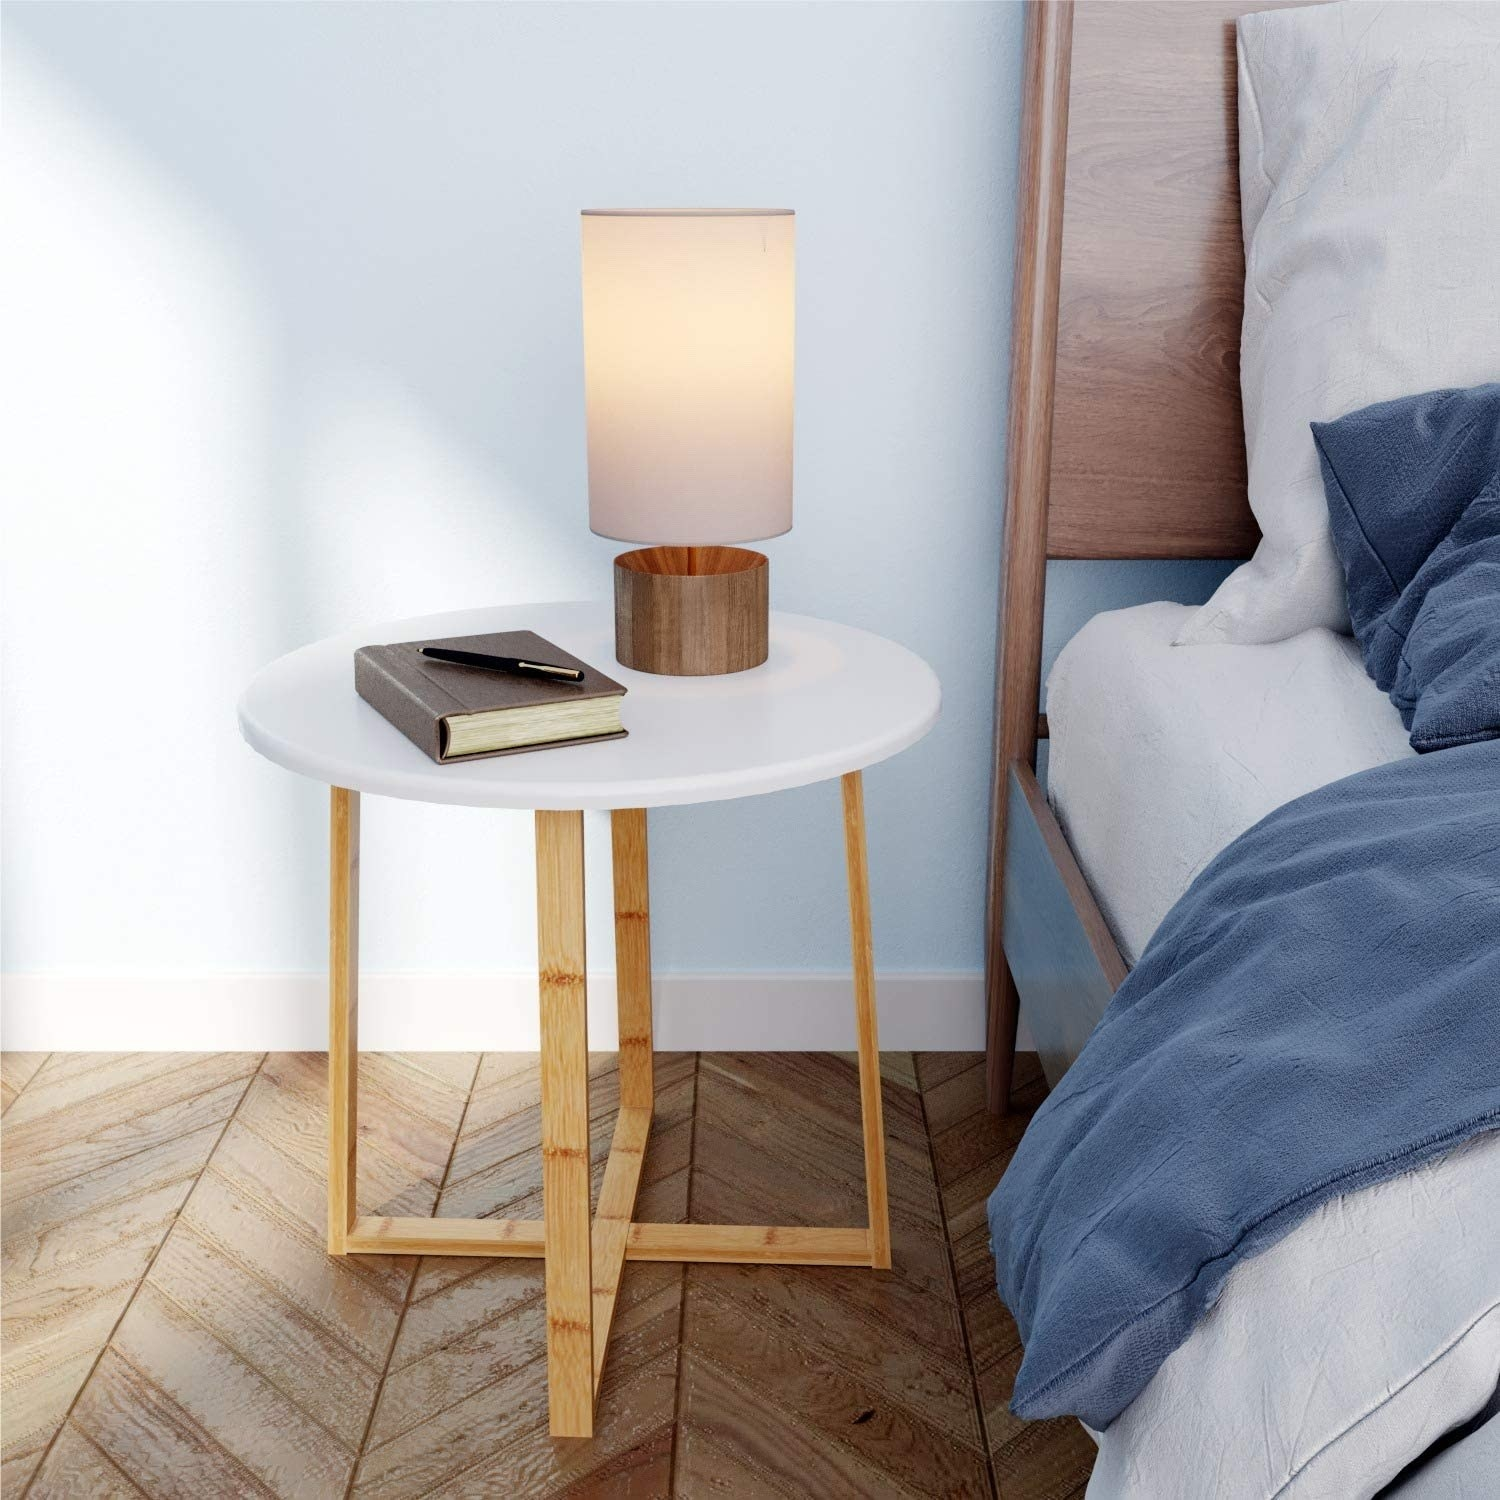 A white circular table with hollow legs